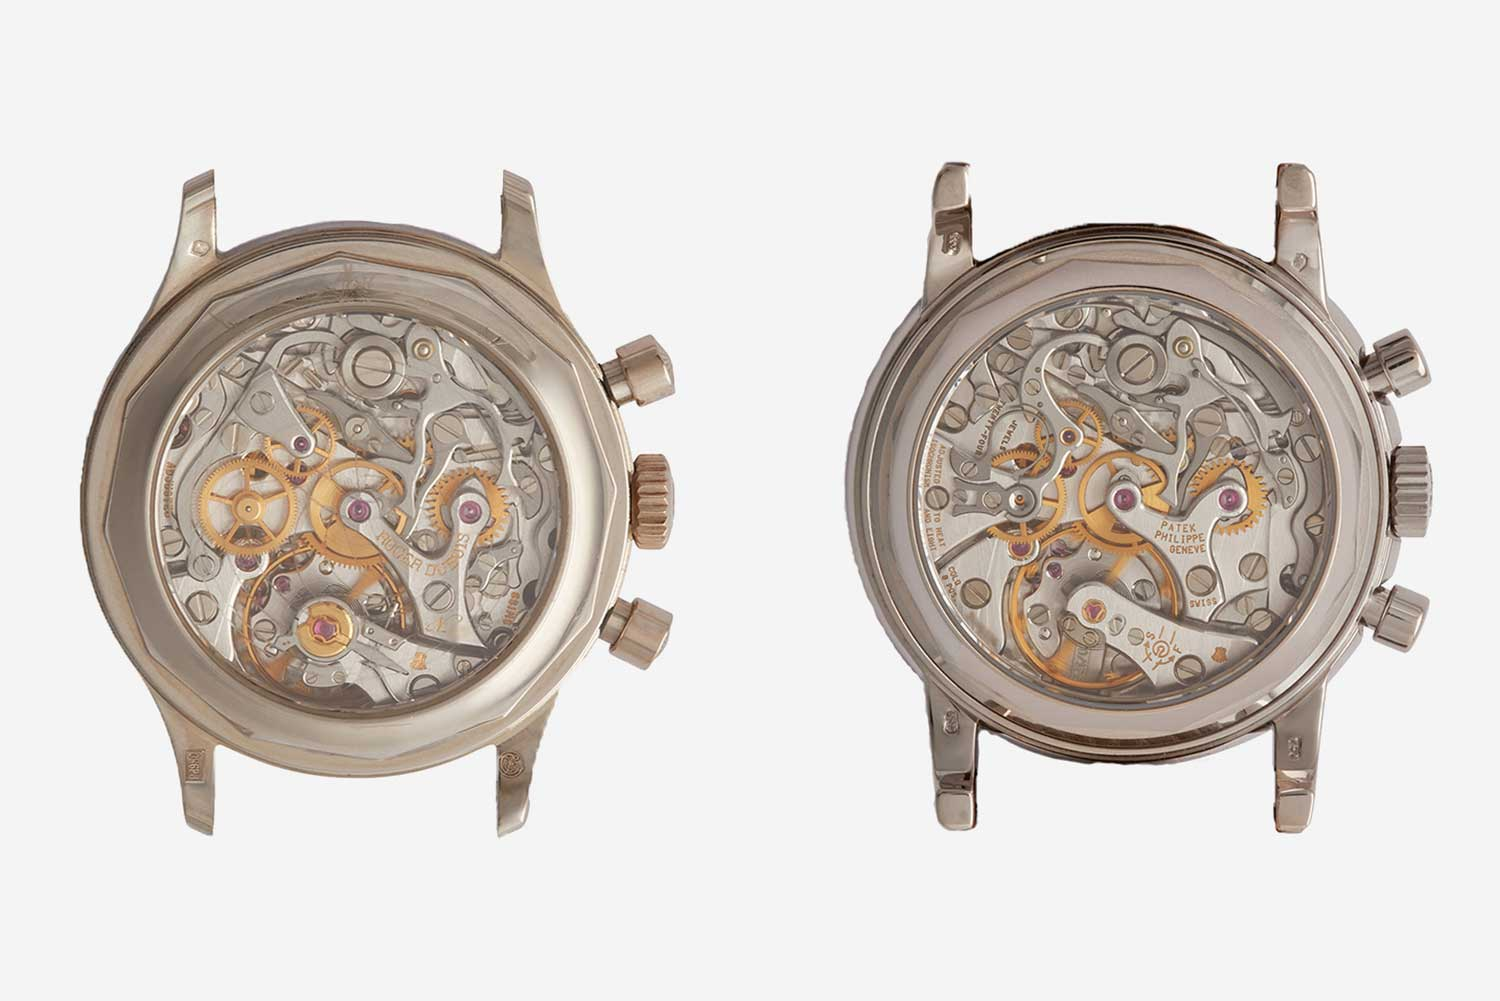 Movement side of an H34 Chronograph (left) and a Patek Philippe 3970 (right).